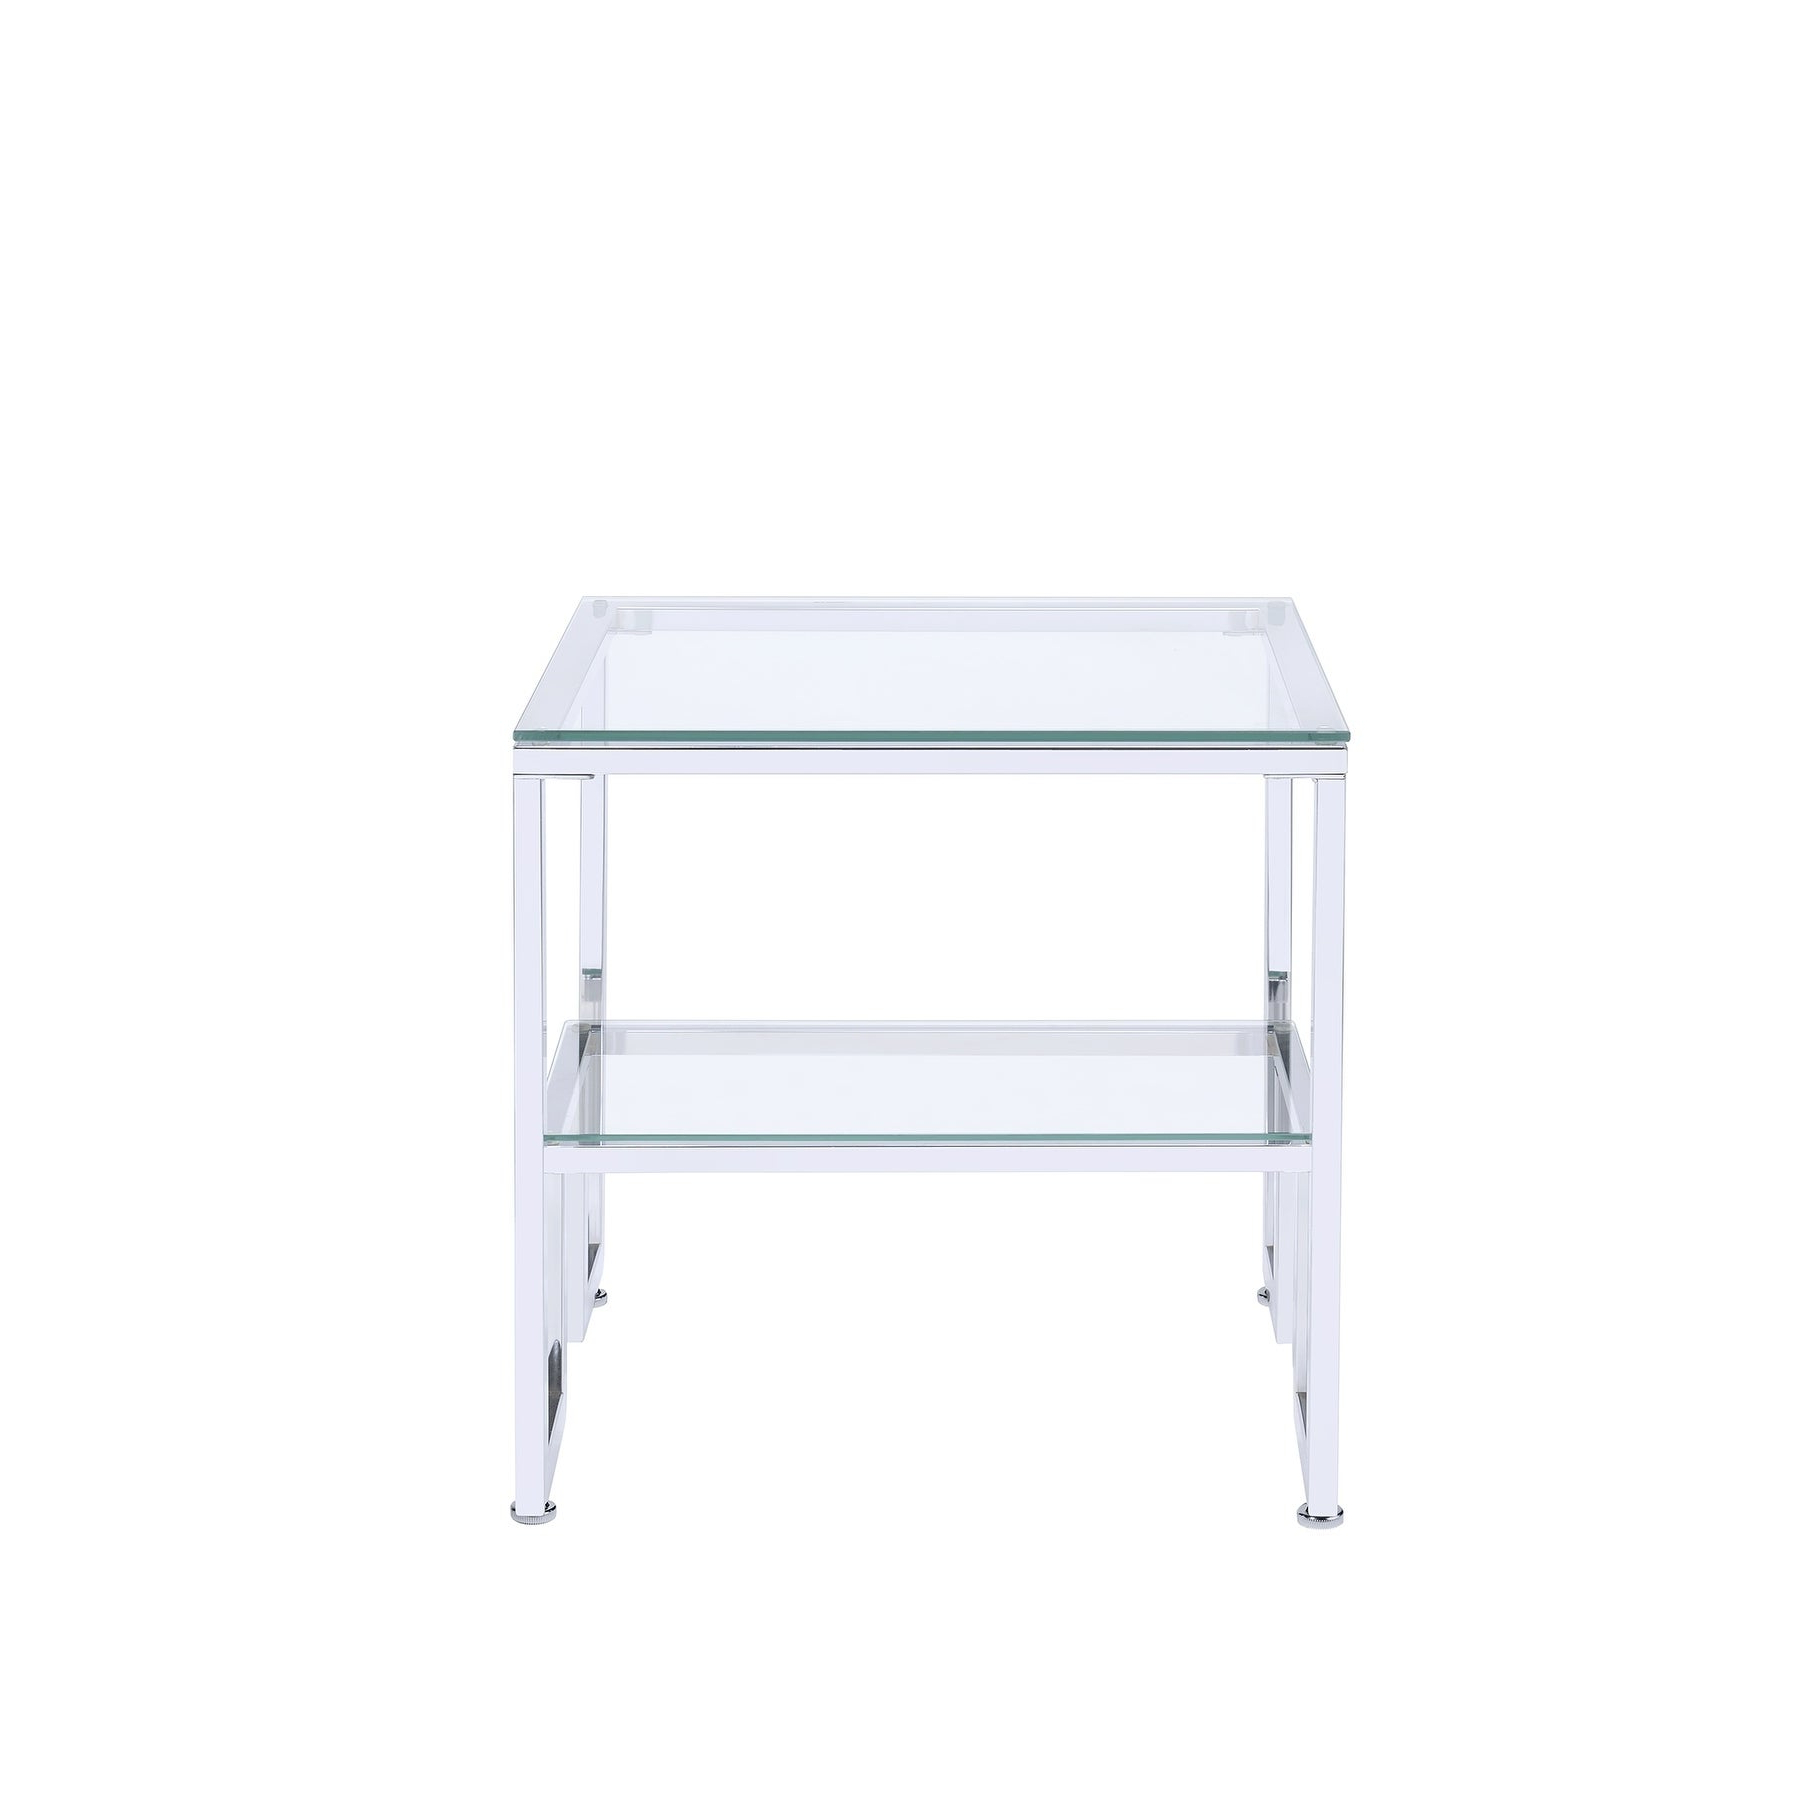 Matteo Modern Glass And Chrome Coffee Table Throughout Well Known Contemporary Chrome Glass Top And Mirror Shelf Coffee Tables (View 7 of 20)